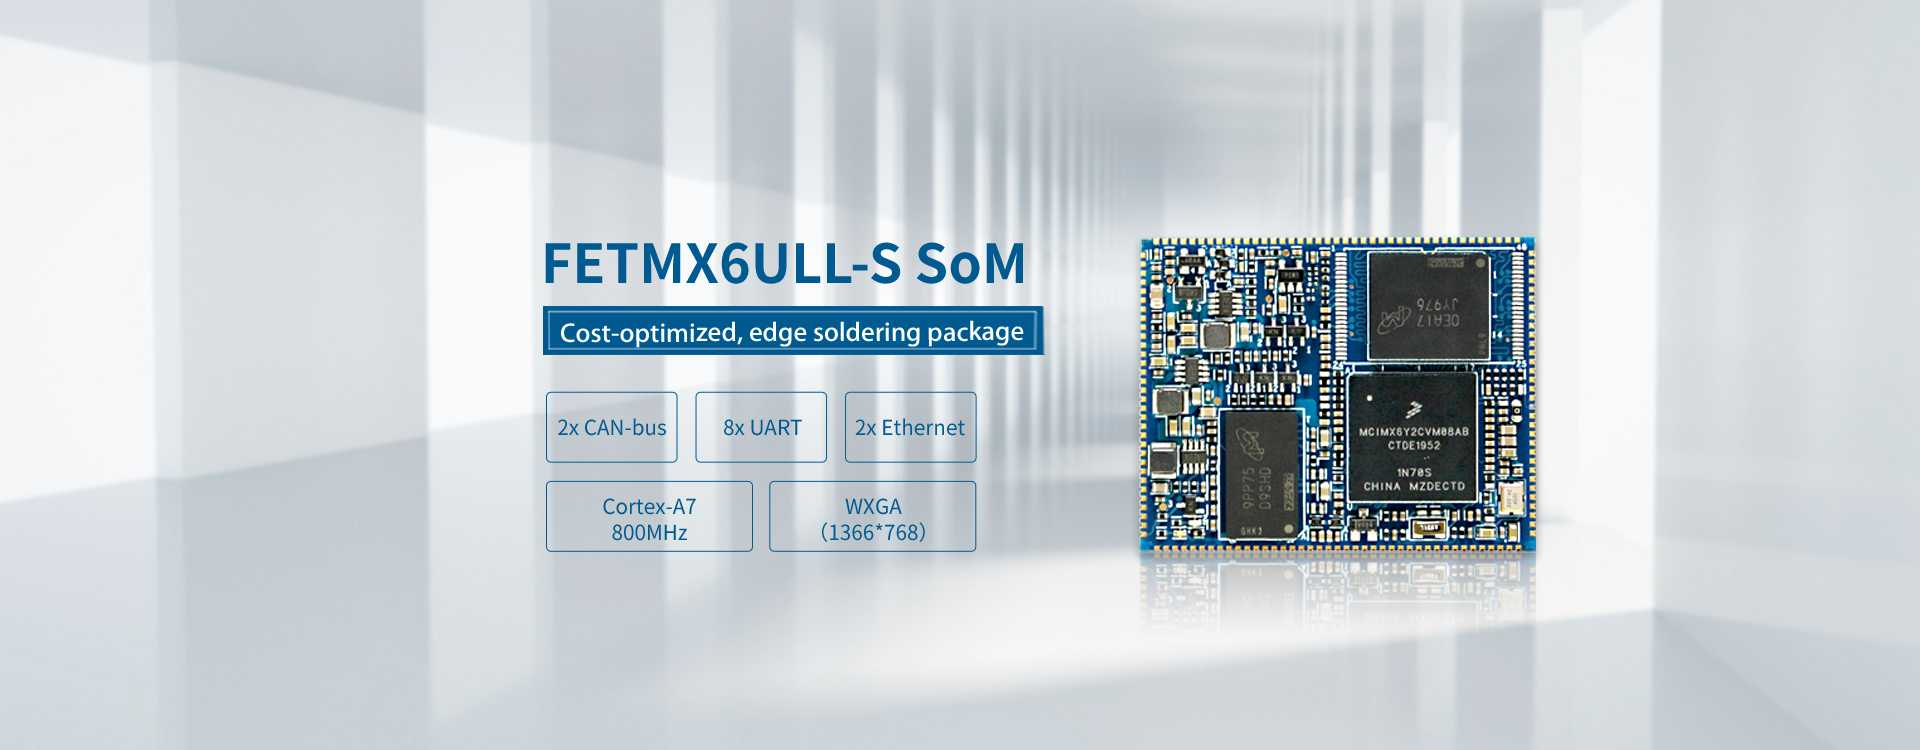 NXP Cortex-A7 iMX6ULL SoC based edge mounting SoM system on